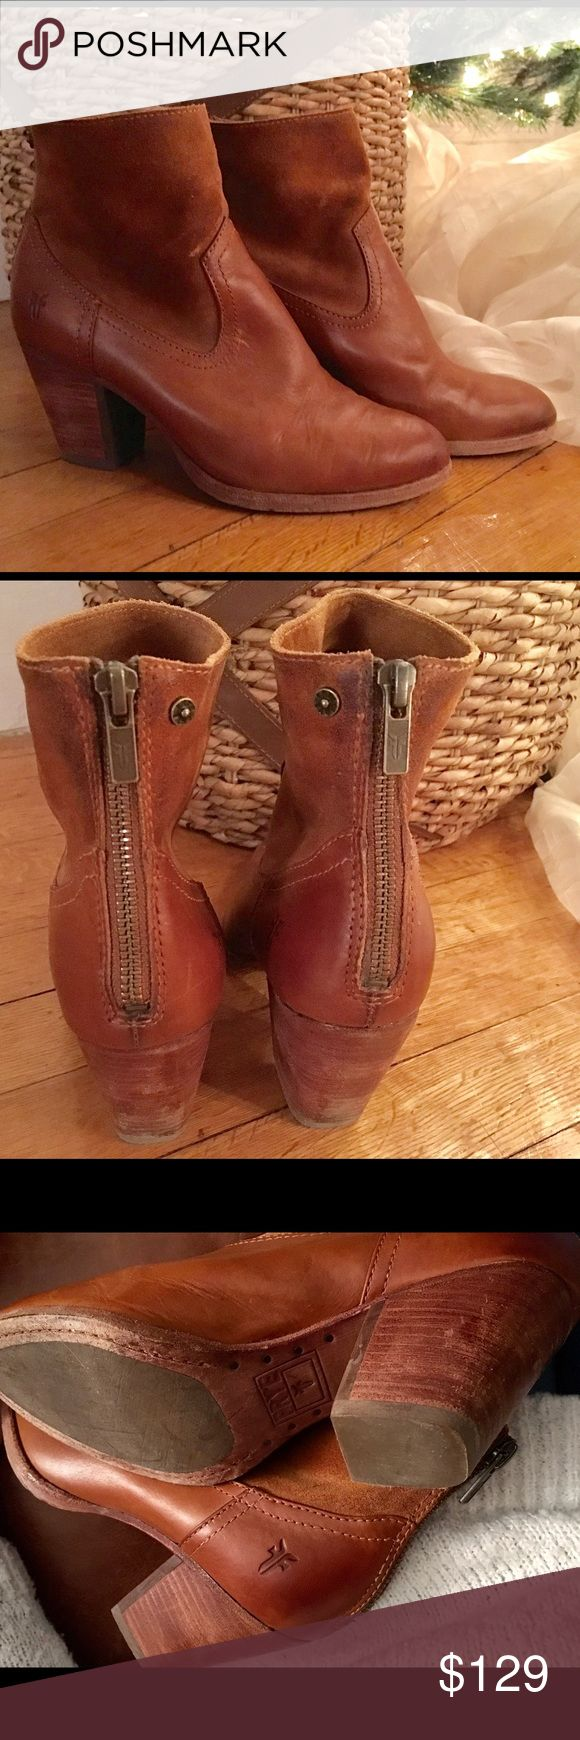 """Frye Tessa Ankle Boots Top rated and out of stock on the frye website. Some signs of wear, but in great shape. Plus, boots like these get better with age 😉 Vintage leather & oiled suede. 3"""" heel. Full zip in back. Frye Shoes Ankle Boots & Booties"""